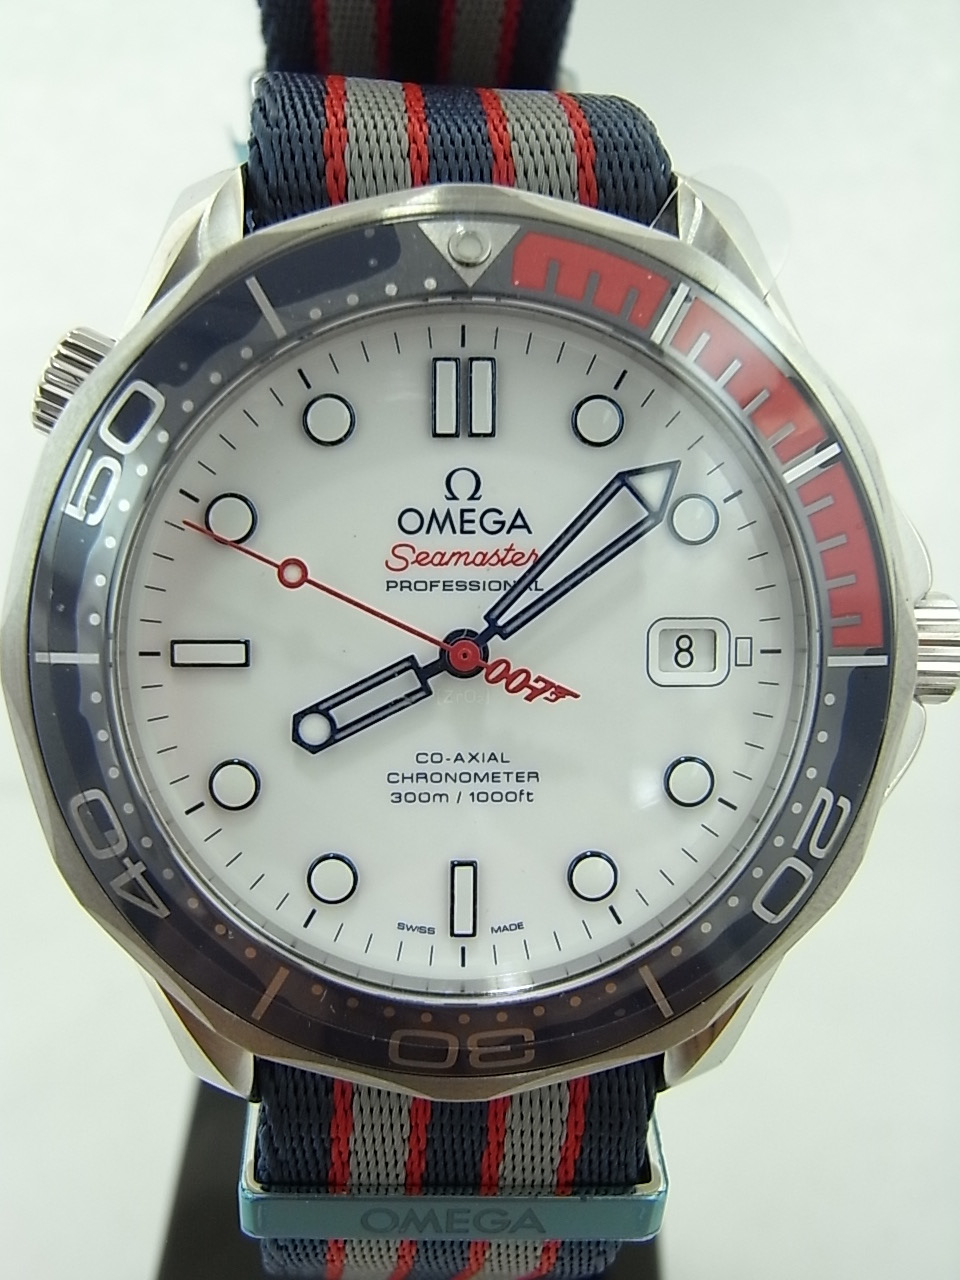 Omega seamaster diver 300m commander s watch le swiss watch box for Omega diver